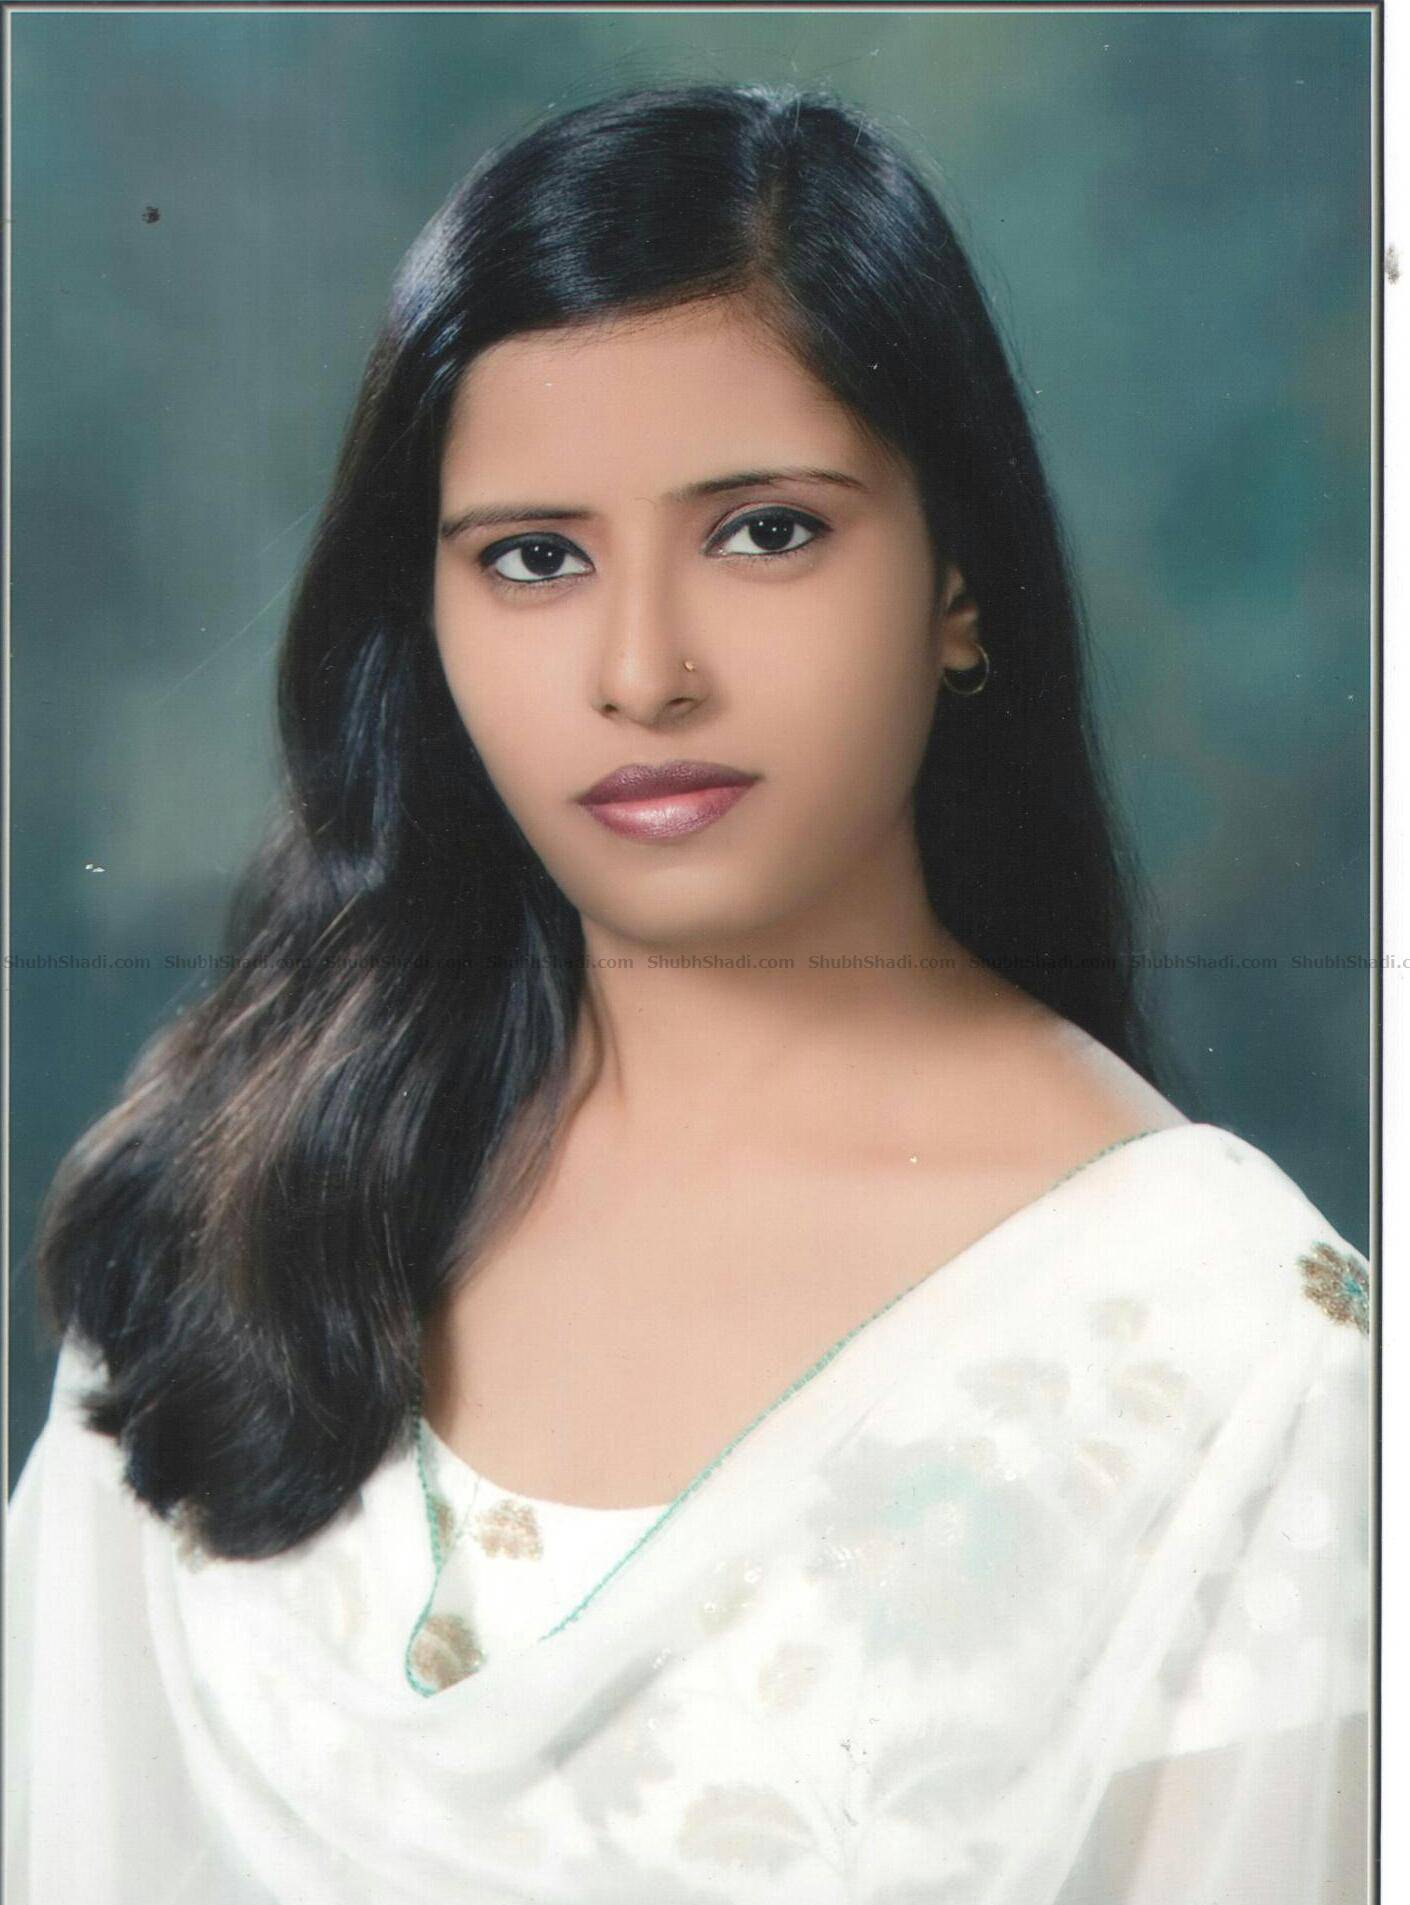 la motte hindu dating site Green singles dating site members are open-minded, liberal and conscious dating for vegans, vegetarians, environmentalists and animal rights activists.